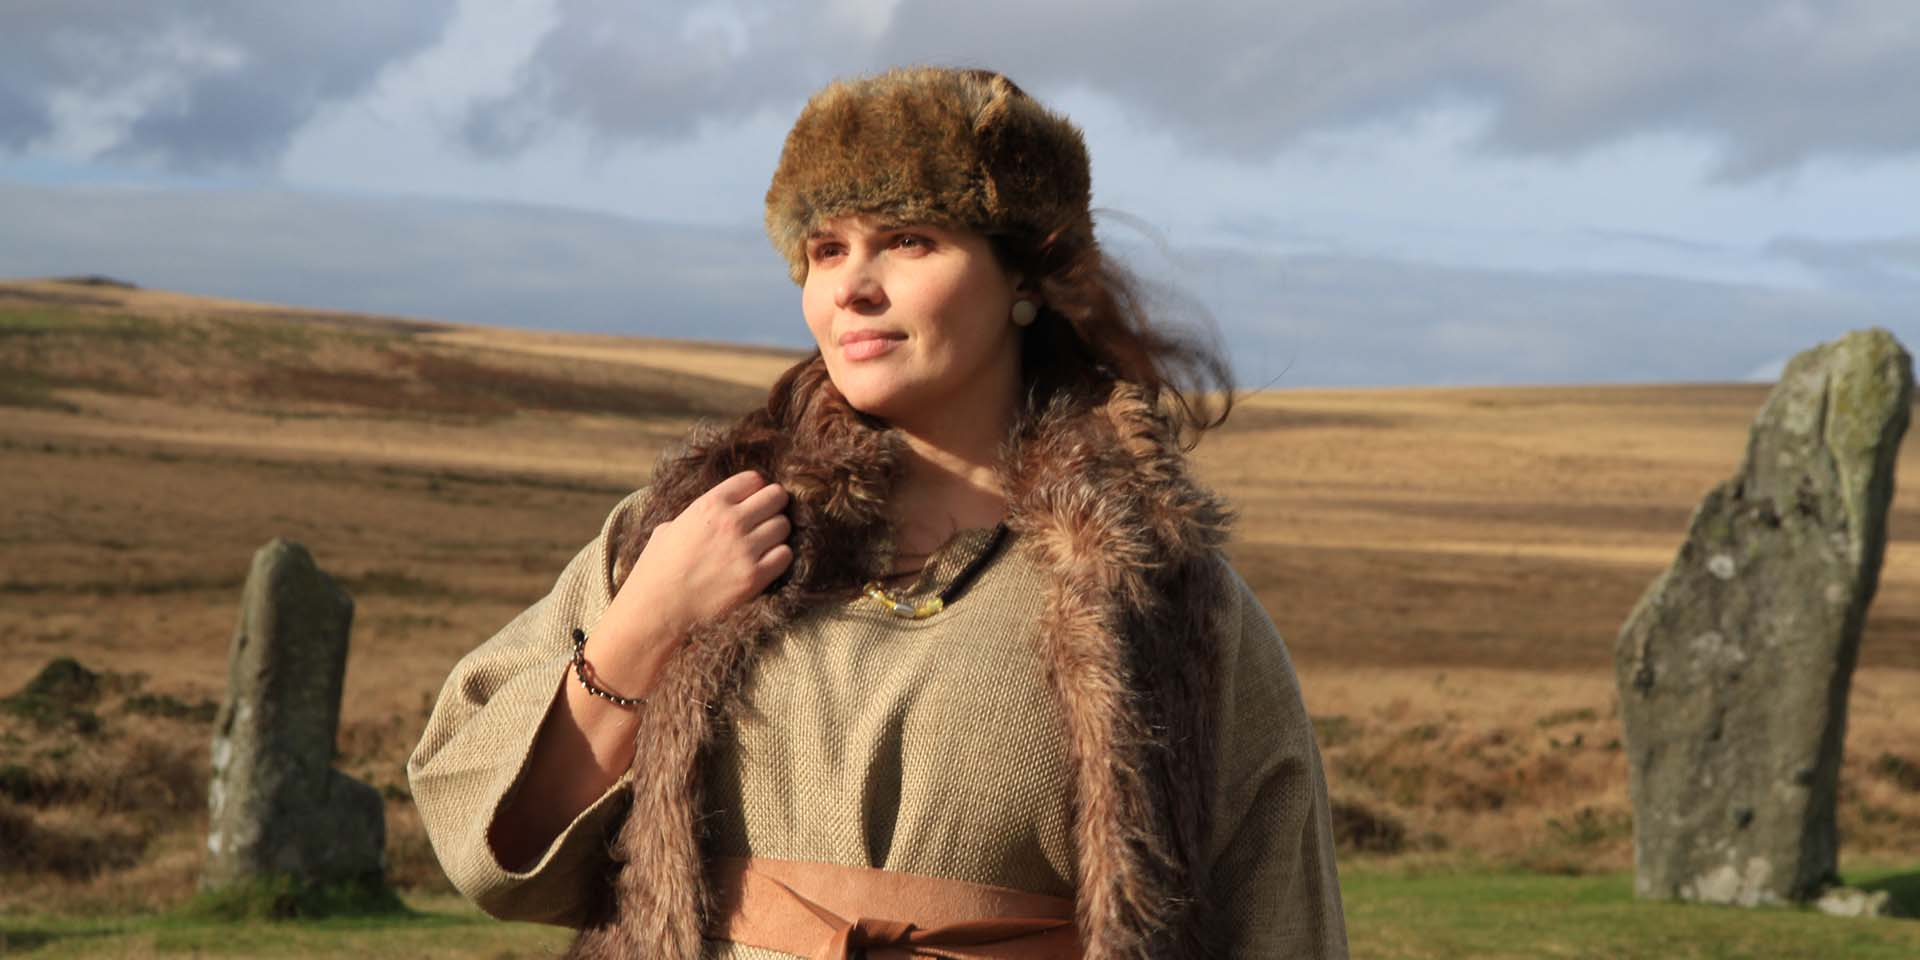 Young woman dressed in Bronze Age clothing and jewellry